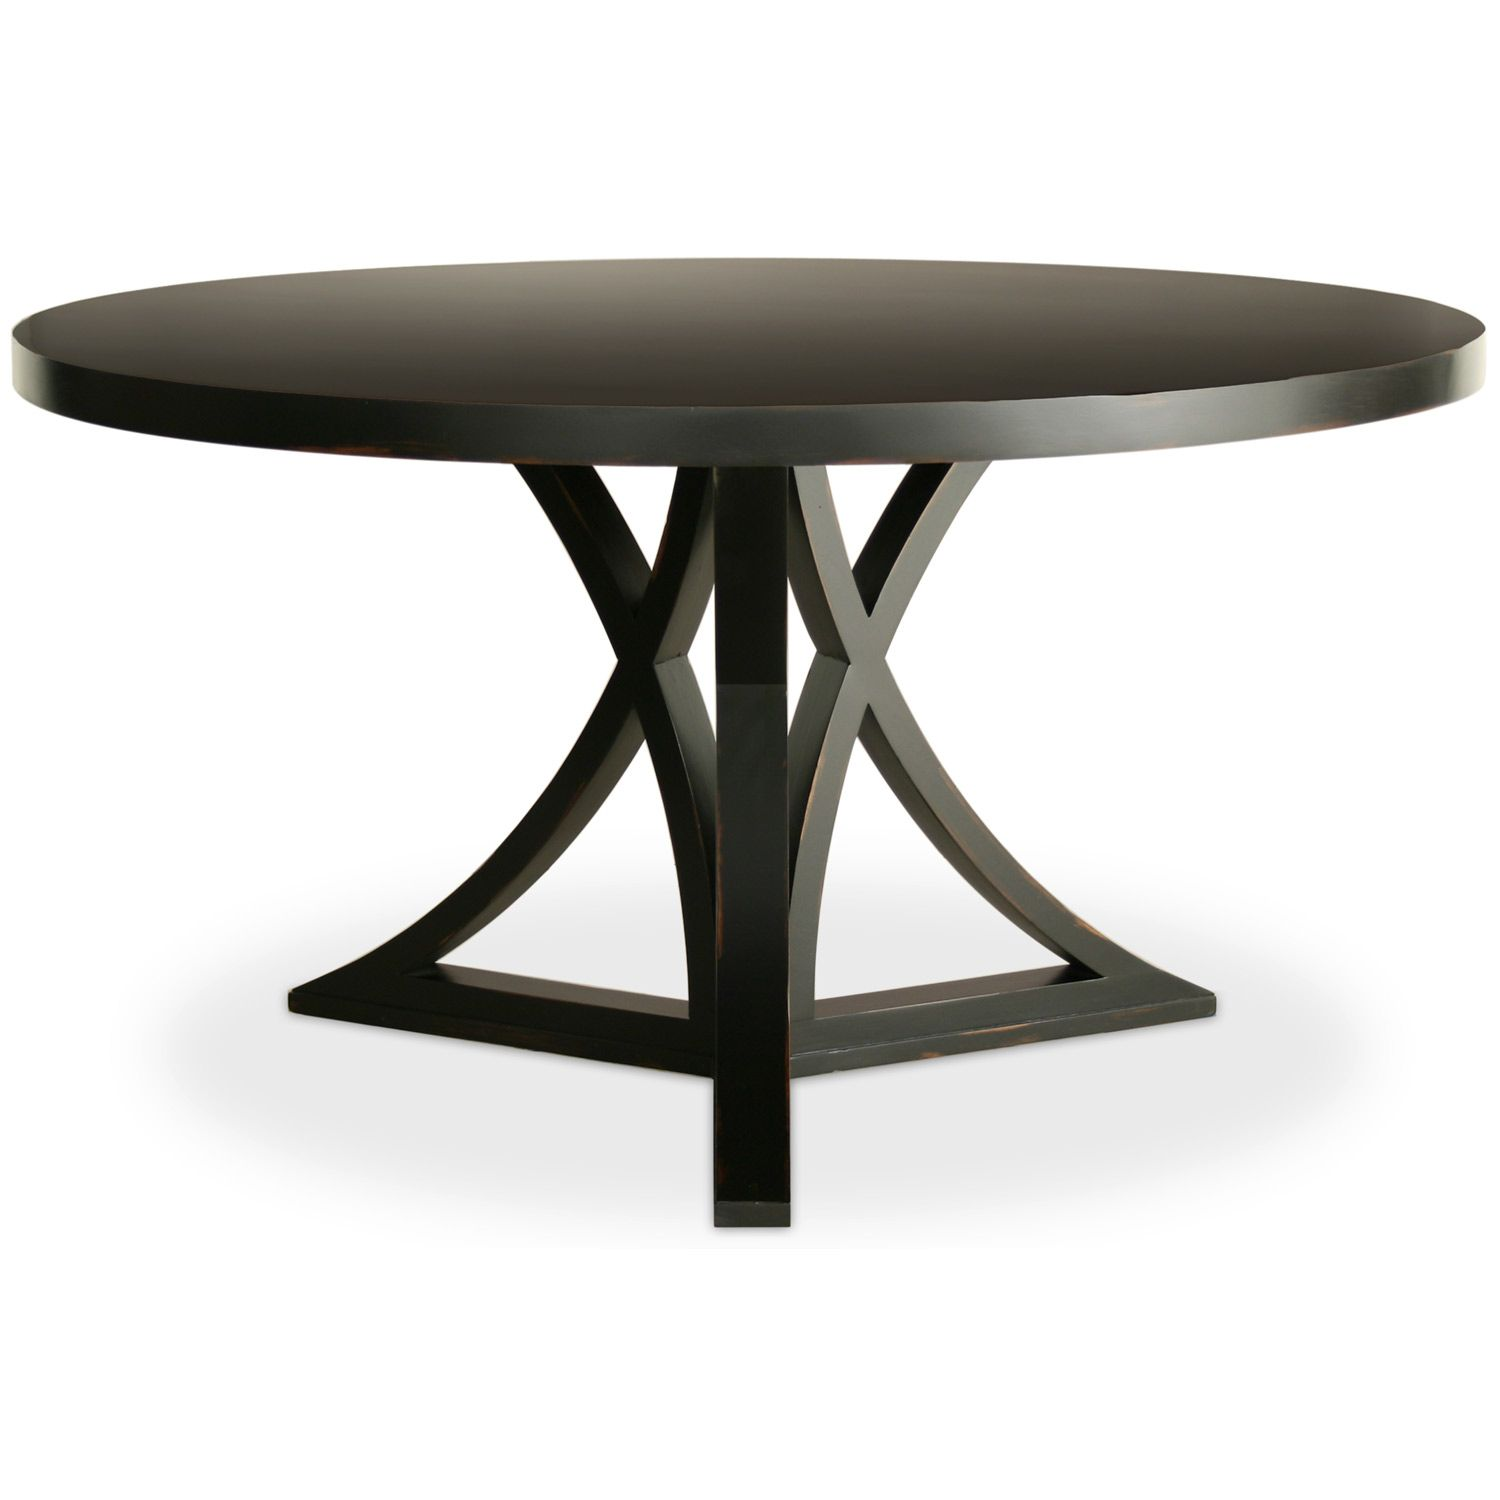 60 round black dining room table when it comes to choosing the right kind of lamp for decorating the house it is sensible to consider a few of the